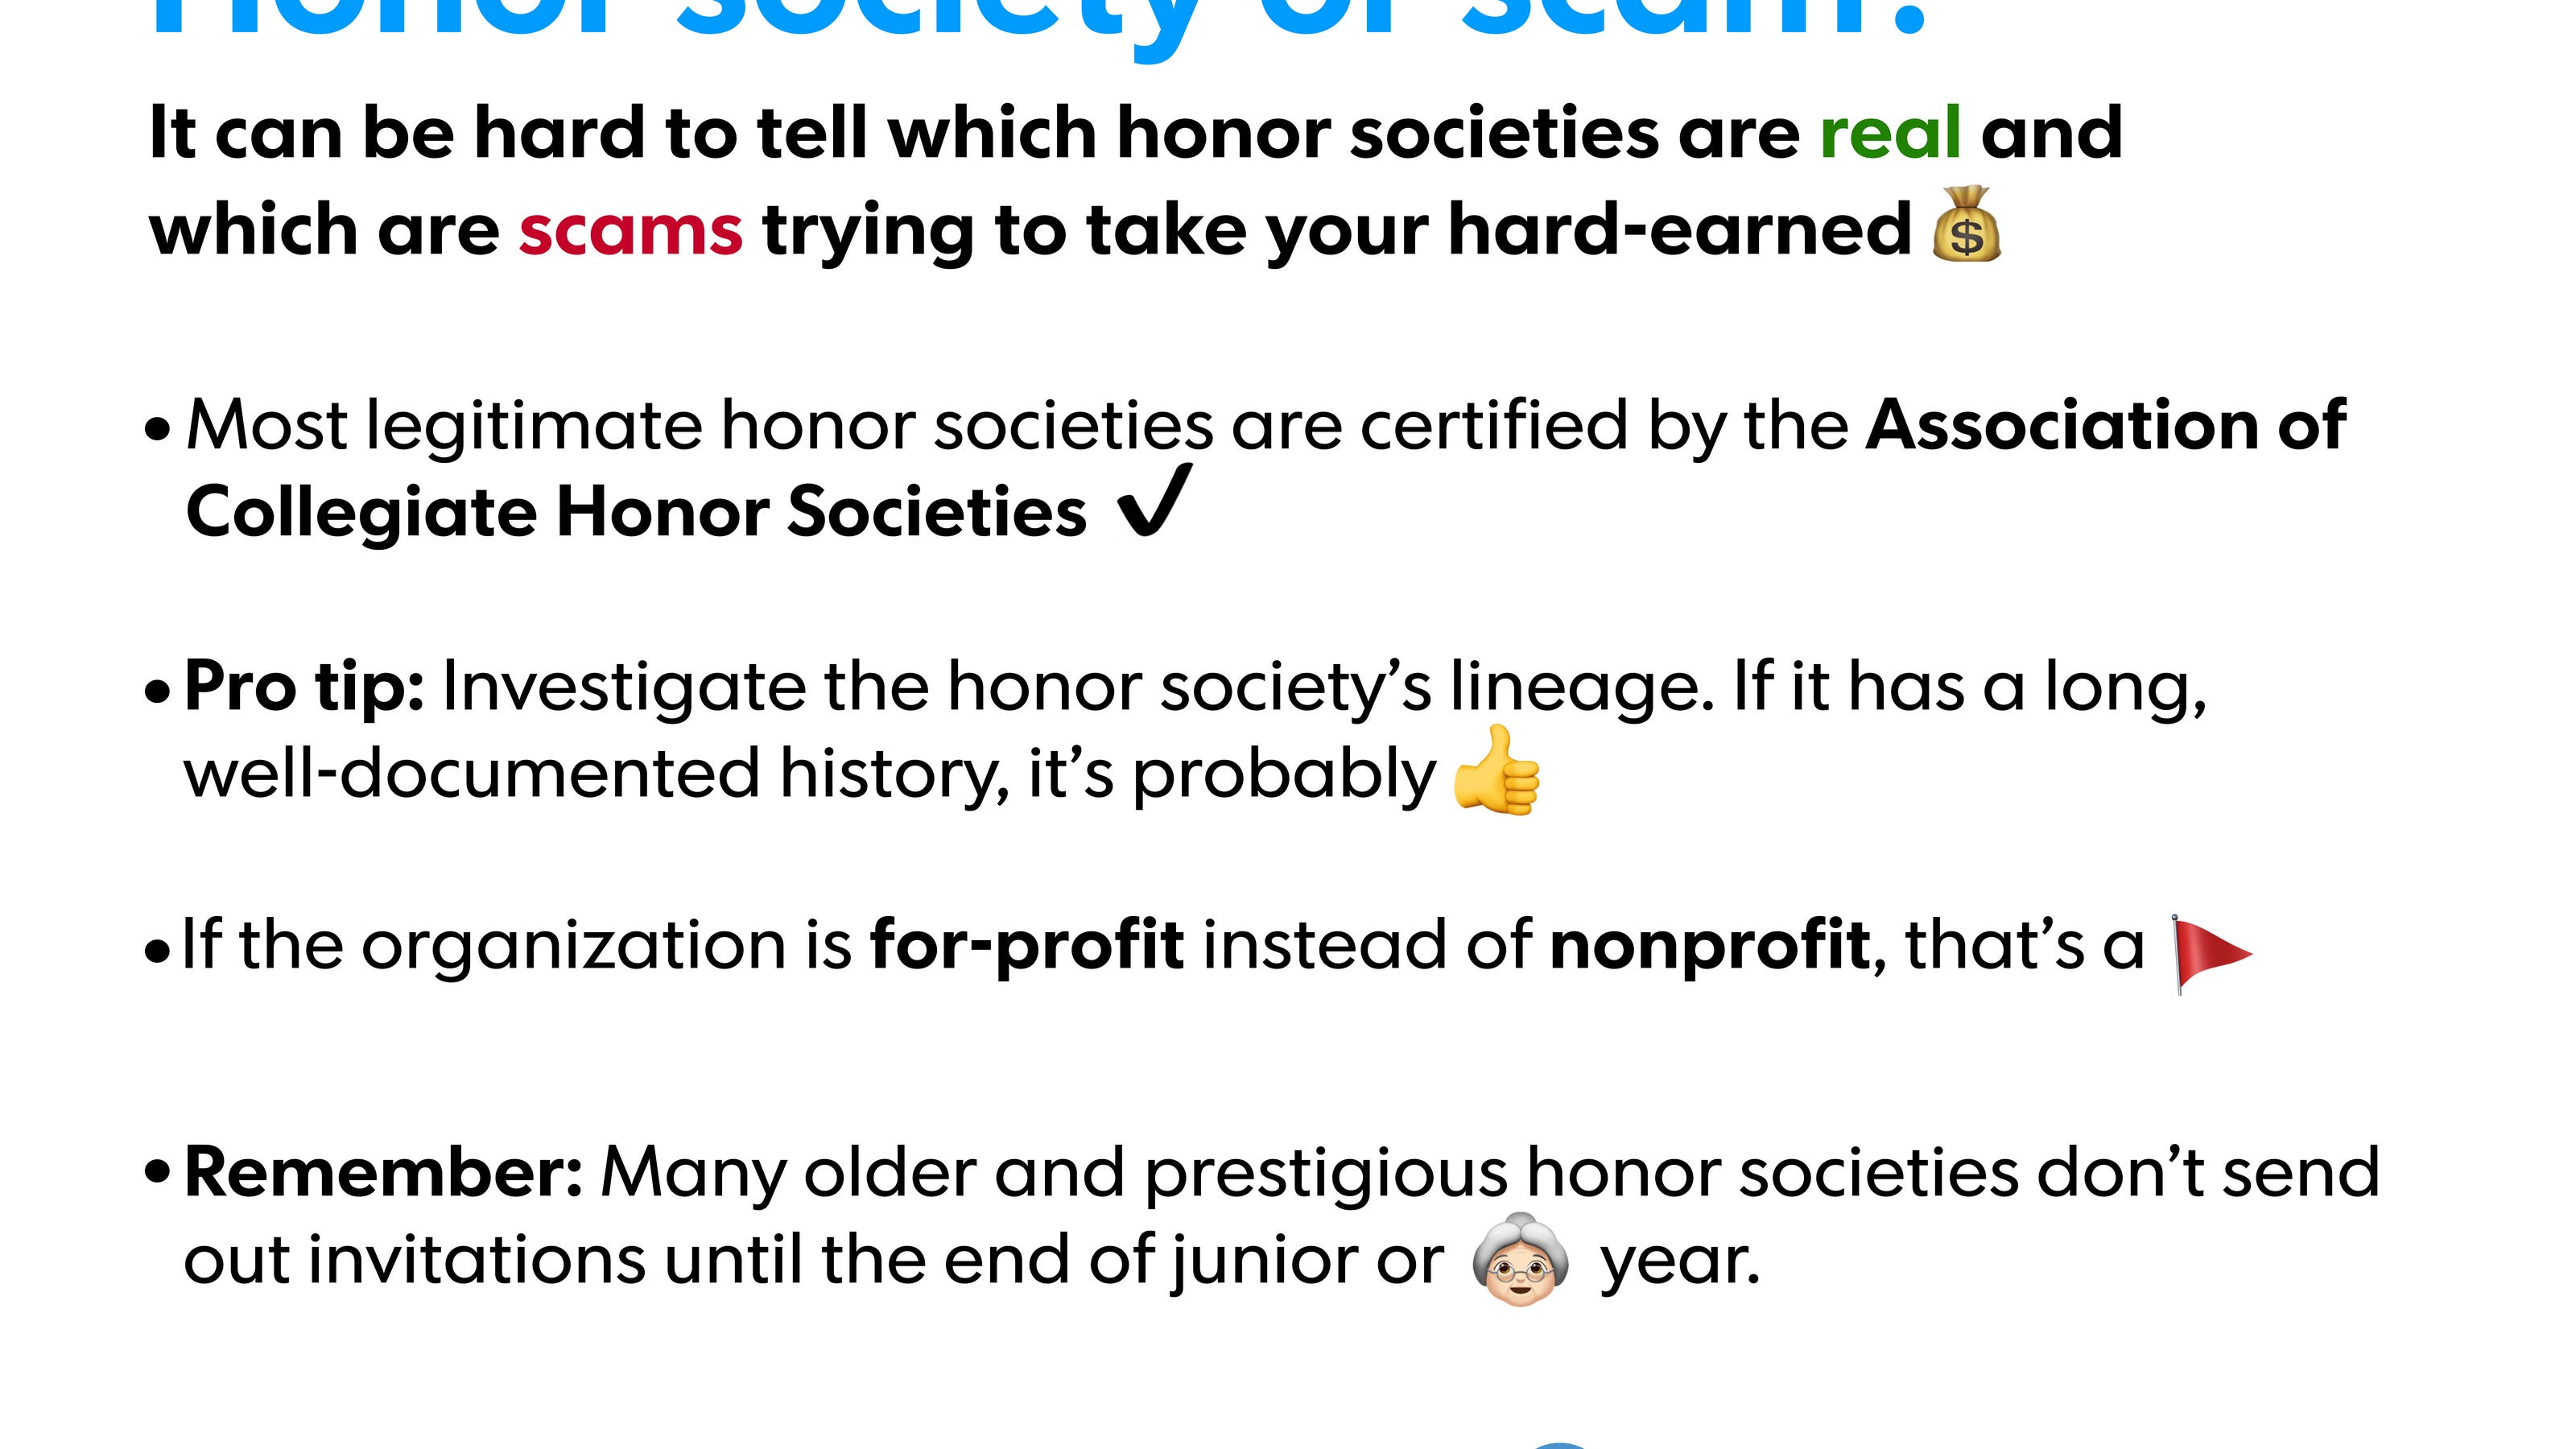 How To Tell Sketchy Honor Societies From Legitimate Ones